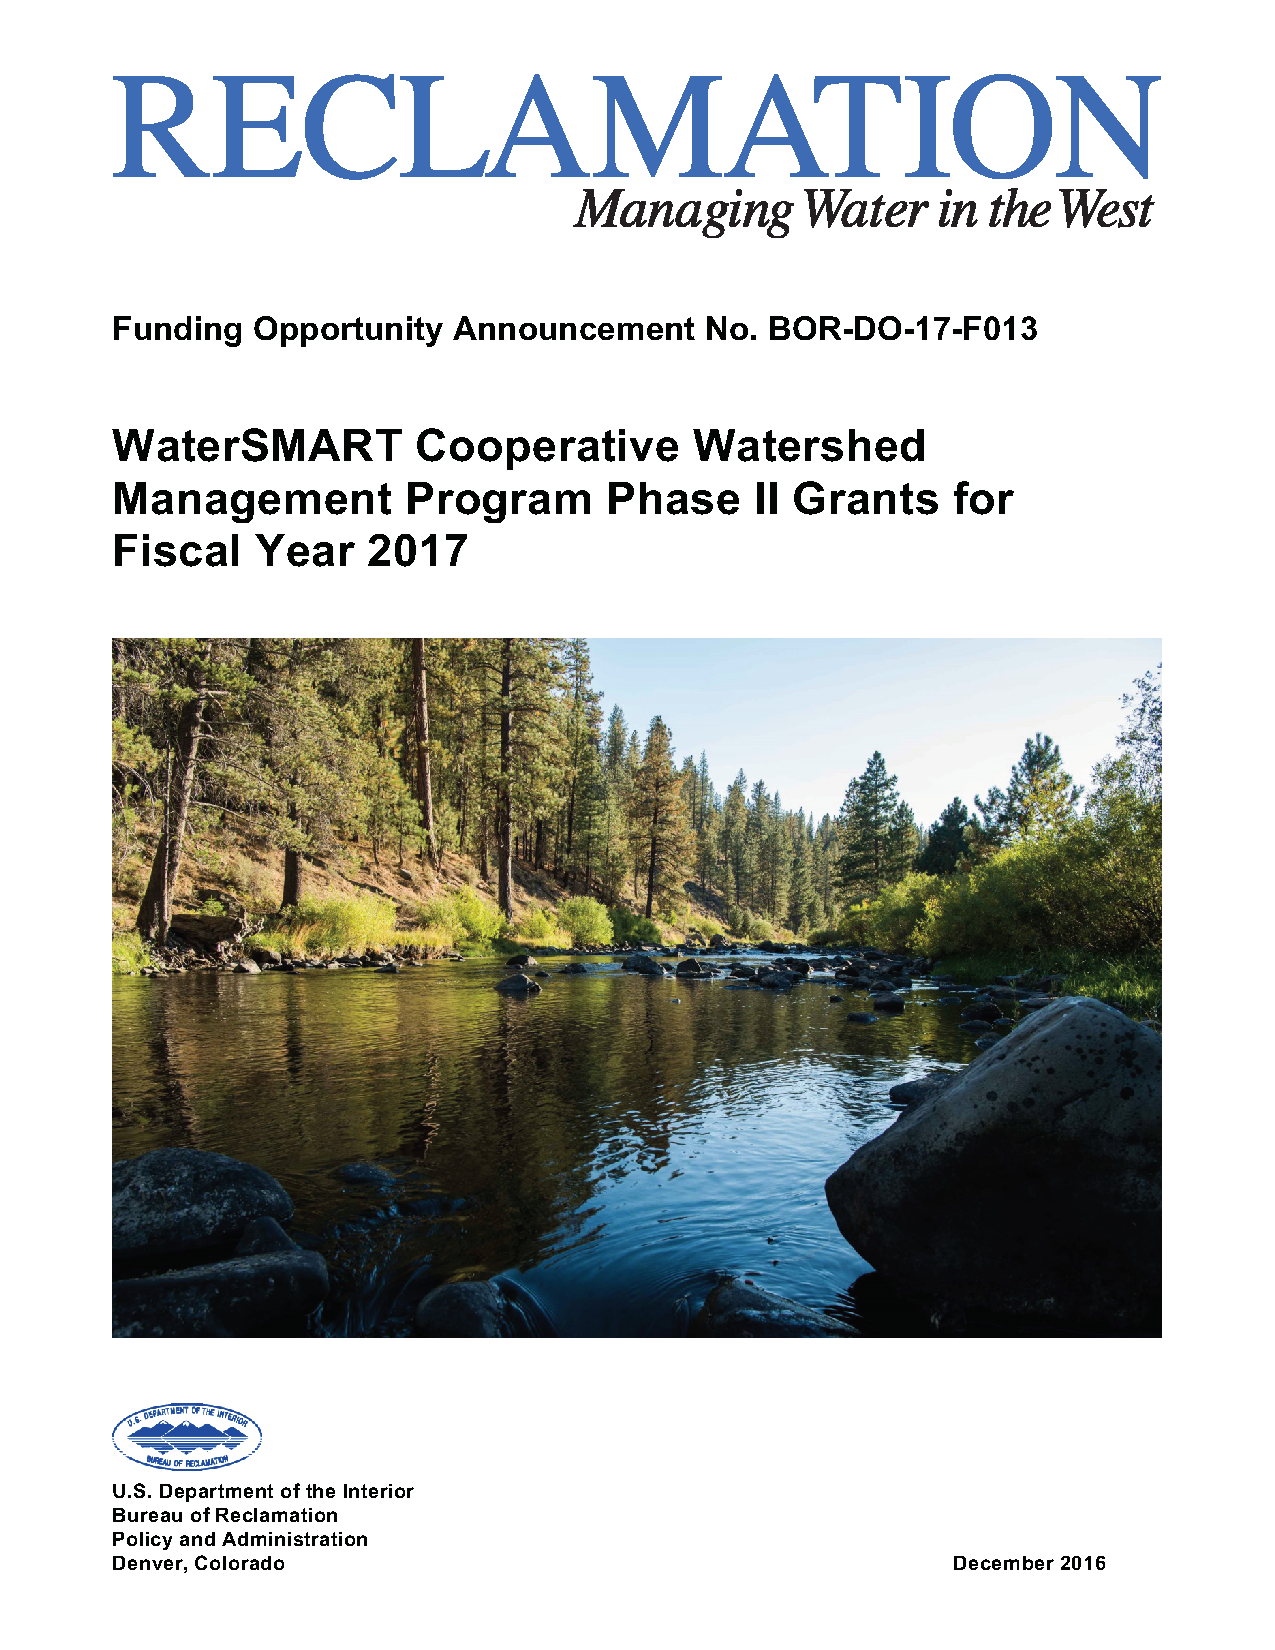 WaterSMART Funding Opportunity Available from Bureau of